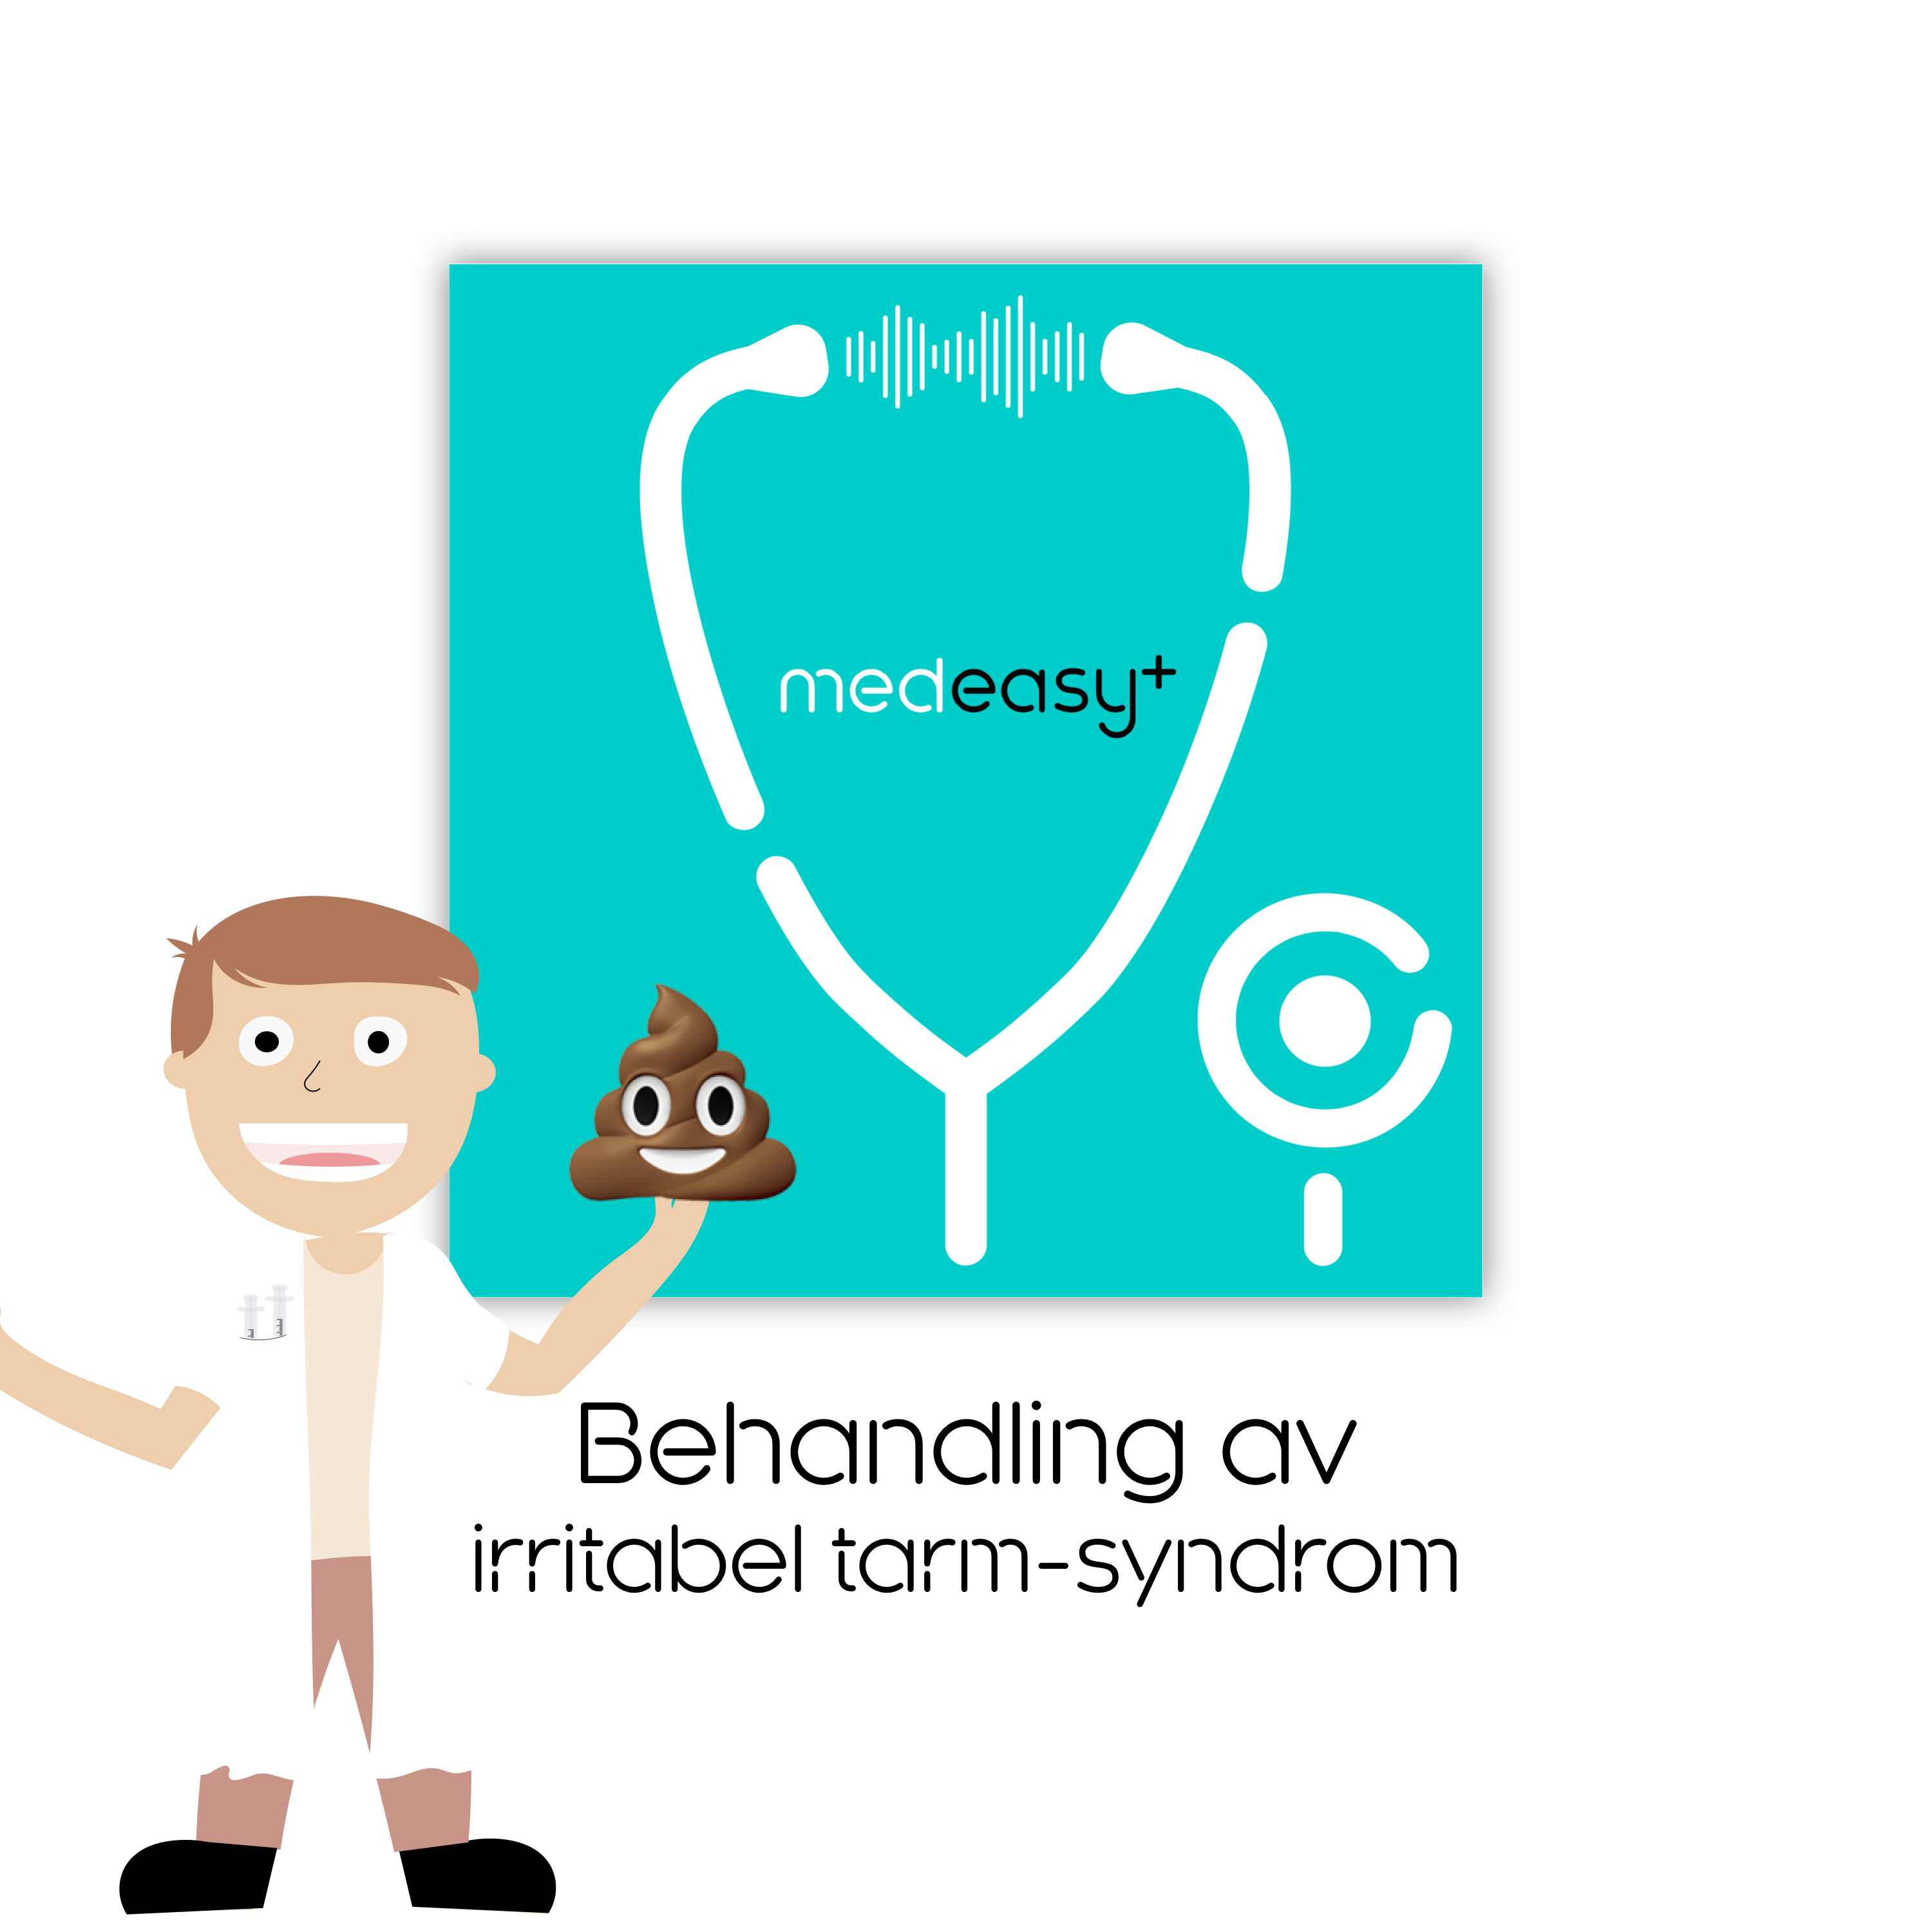 Behandling av irritabel tarm-syndrom